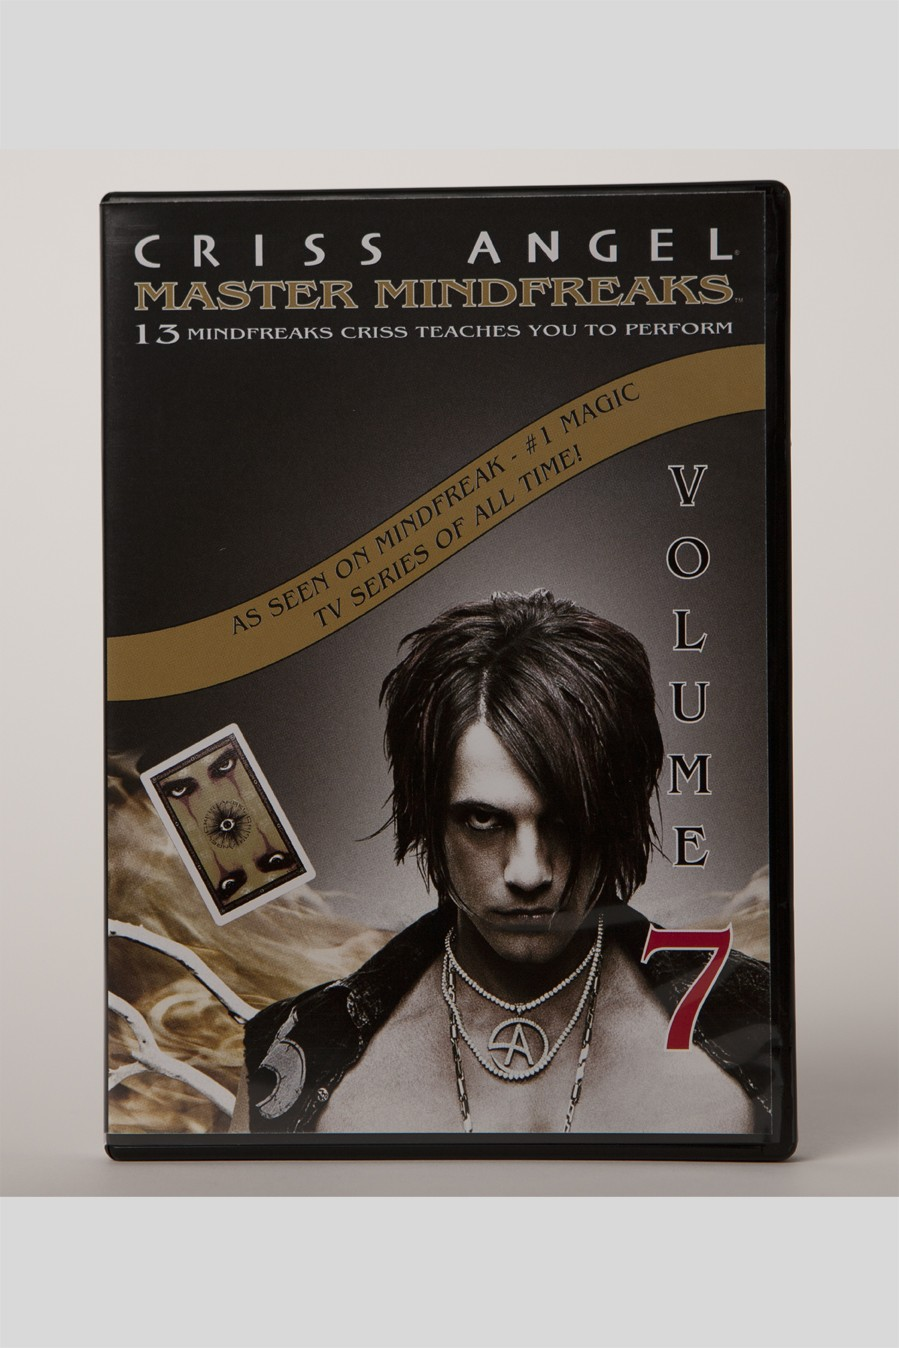 DVD CRISS ANGEL MASTER MINDFREAKS VOL 7